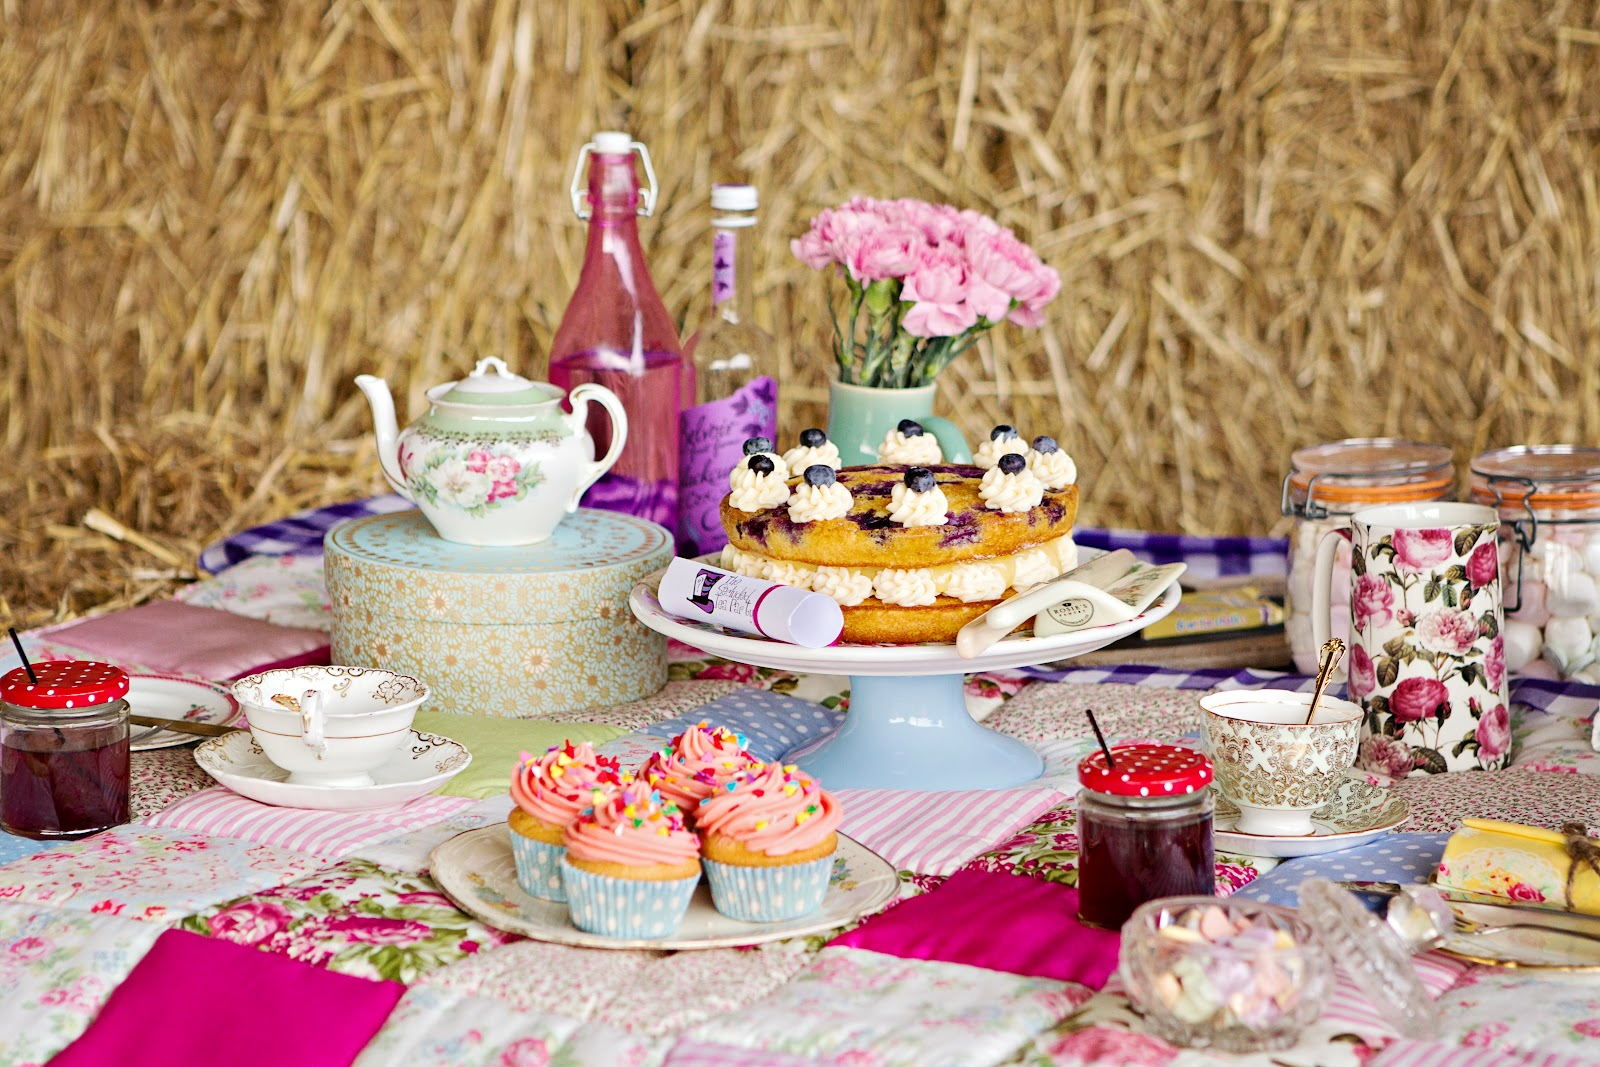 Teaparty: The Secluded Tea Party: The Not So Glamourous Side Of